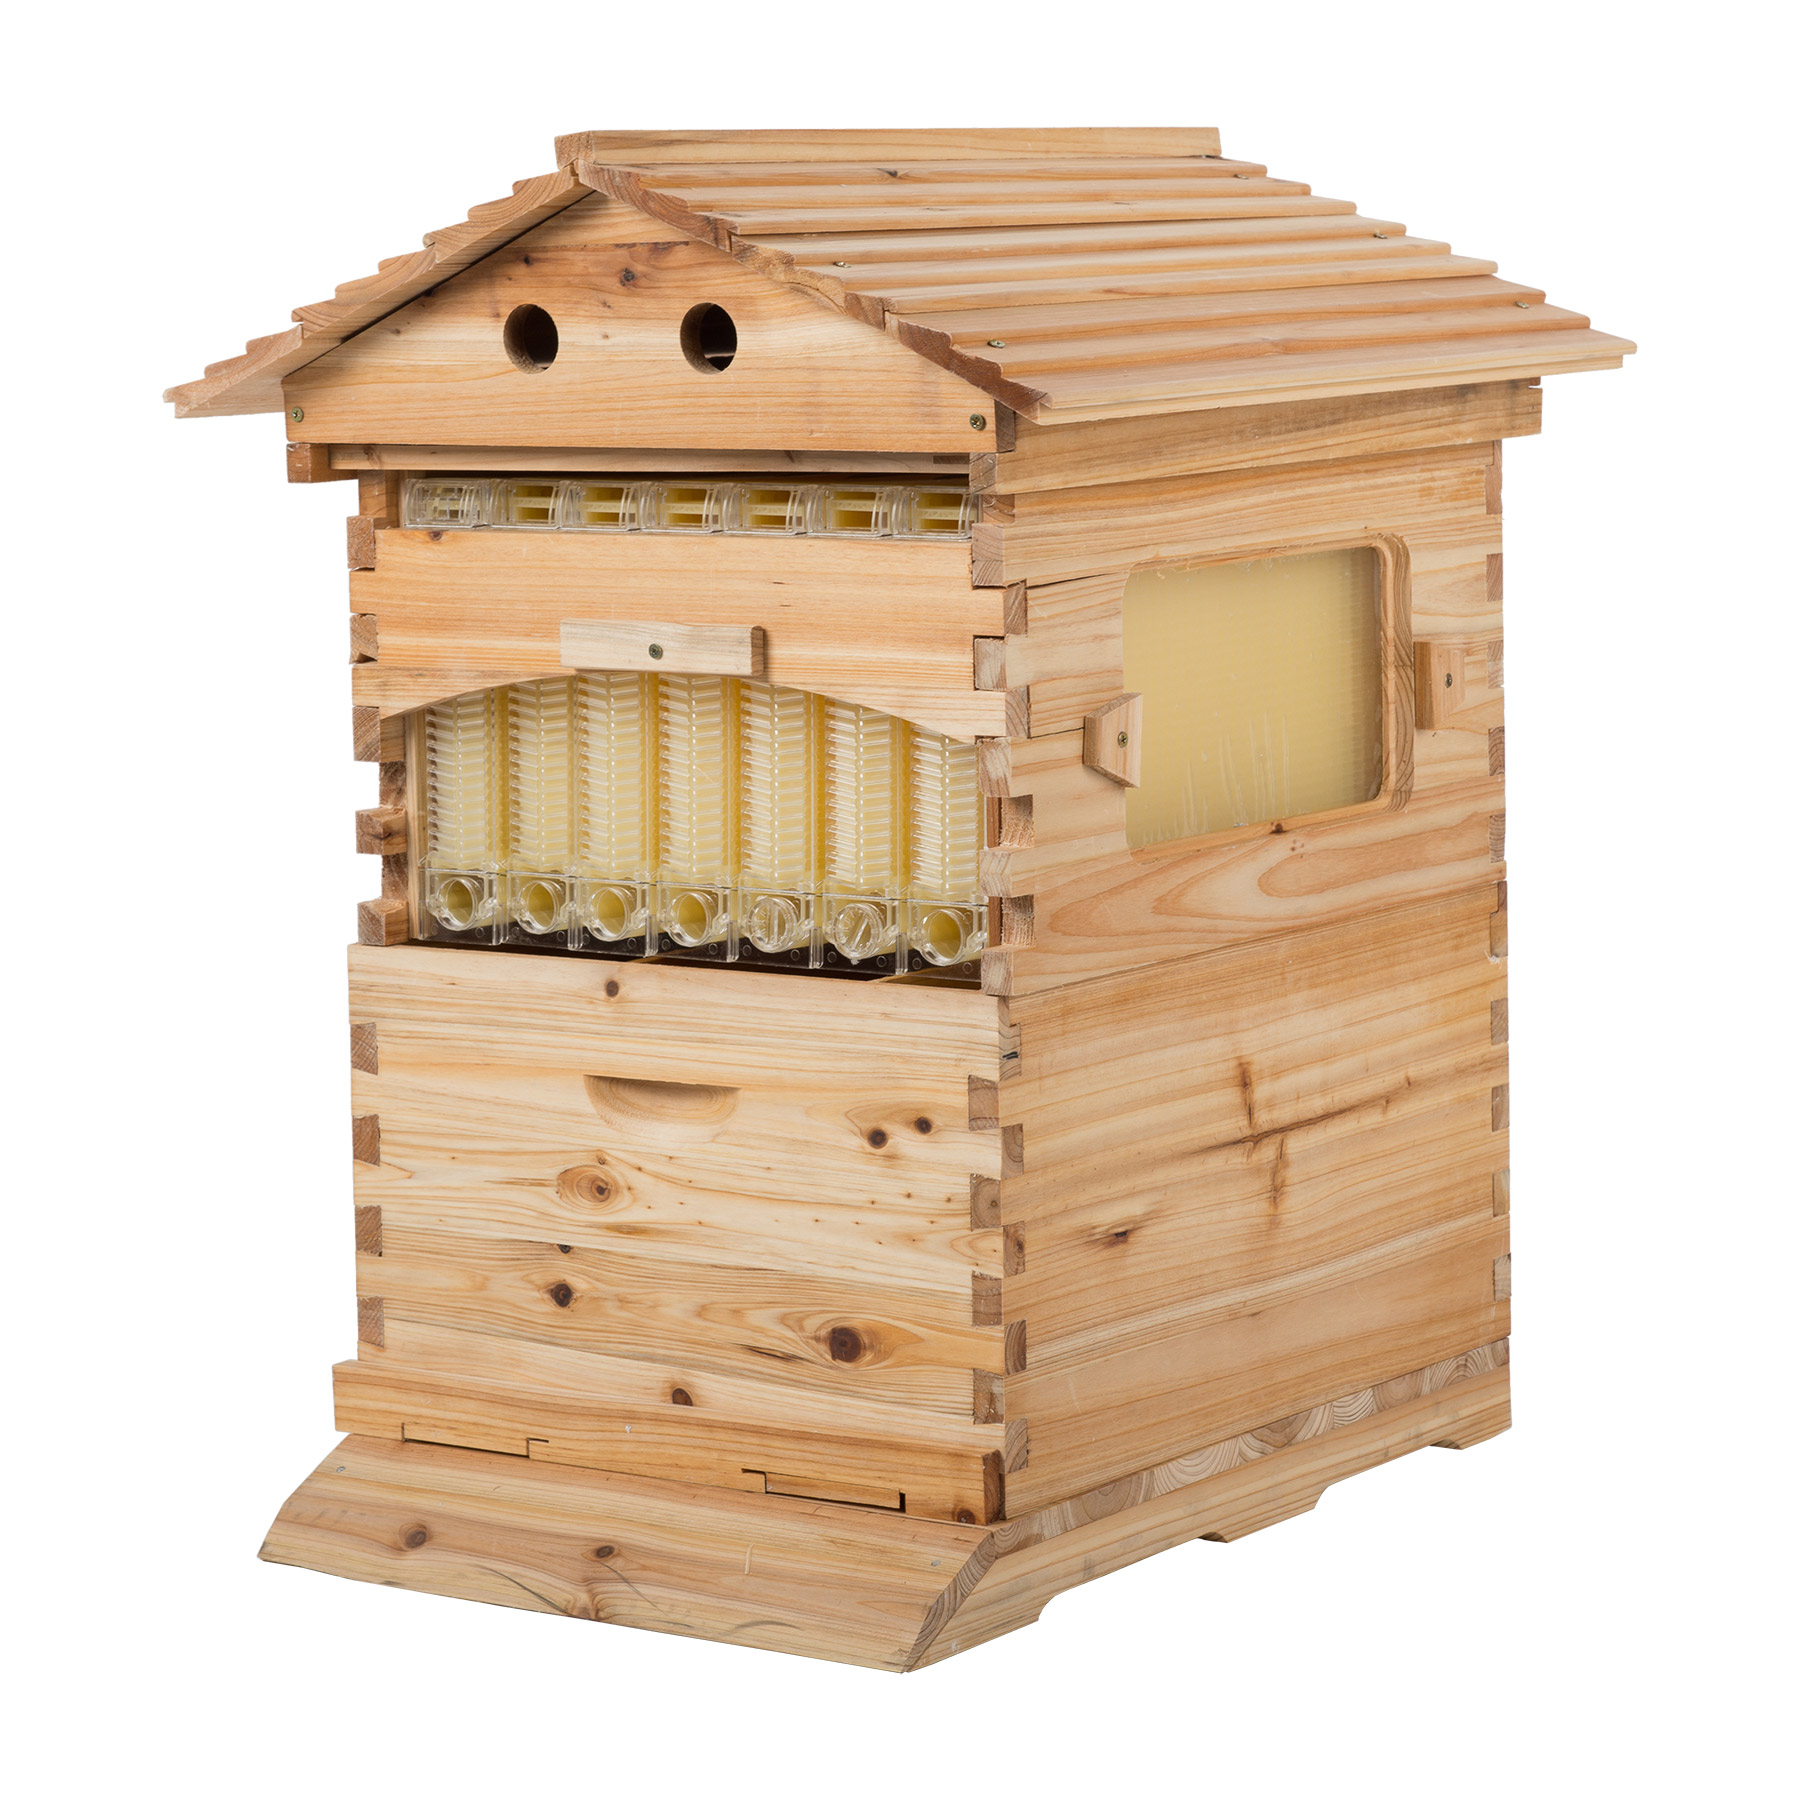 Y-NOT 7PCS Hive Frame/Bee Hive Frame W/ Auto Flowing Honey Hives